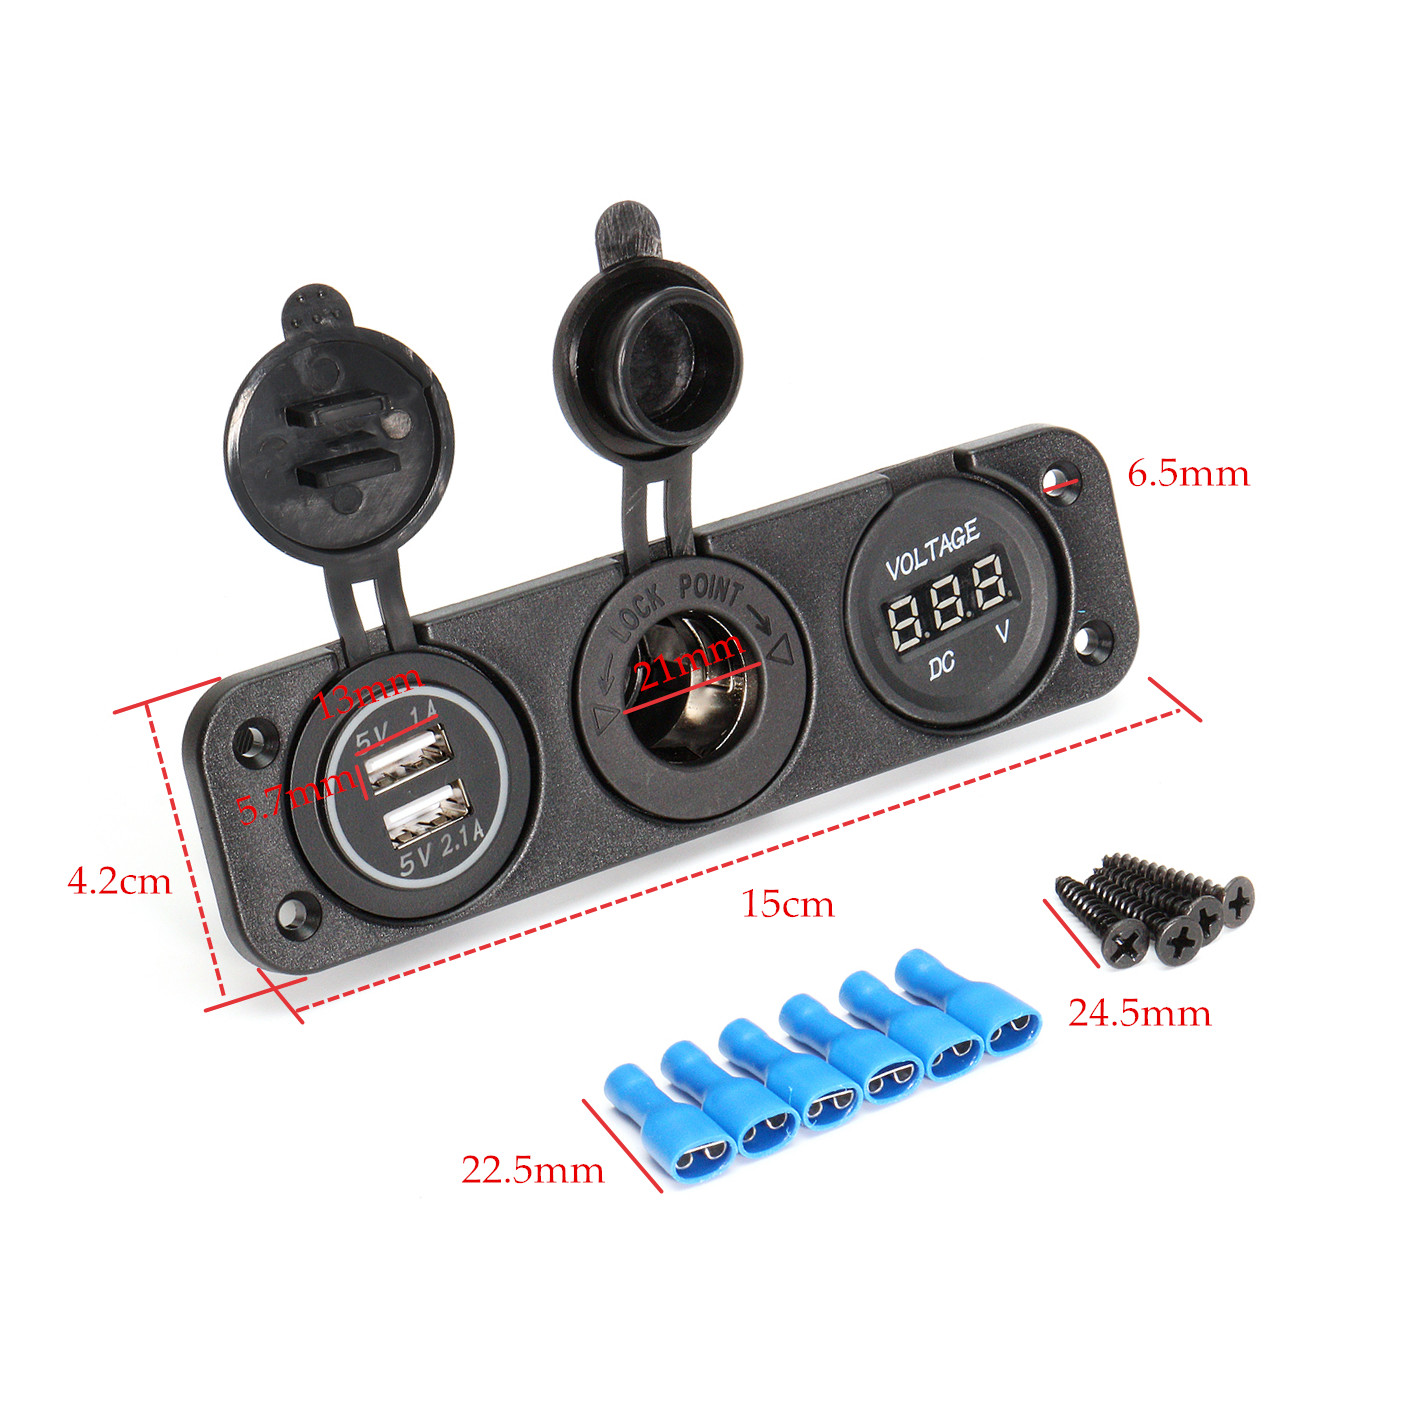 DC 12V Dual Usb Charger Car Cigarette Lighter Socket Lighter Adapter Outlet Volt Meterr